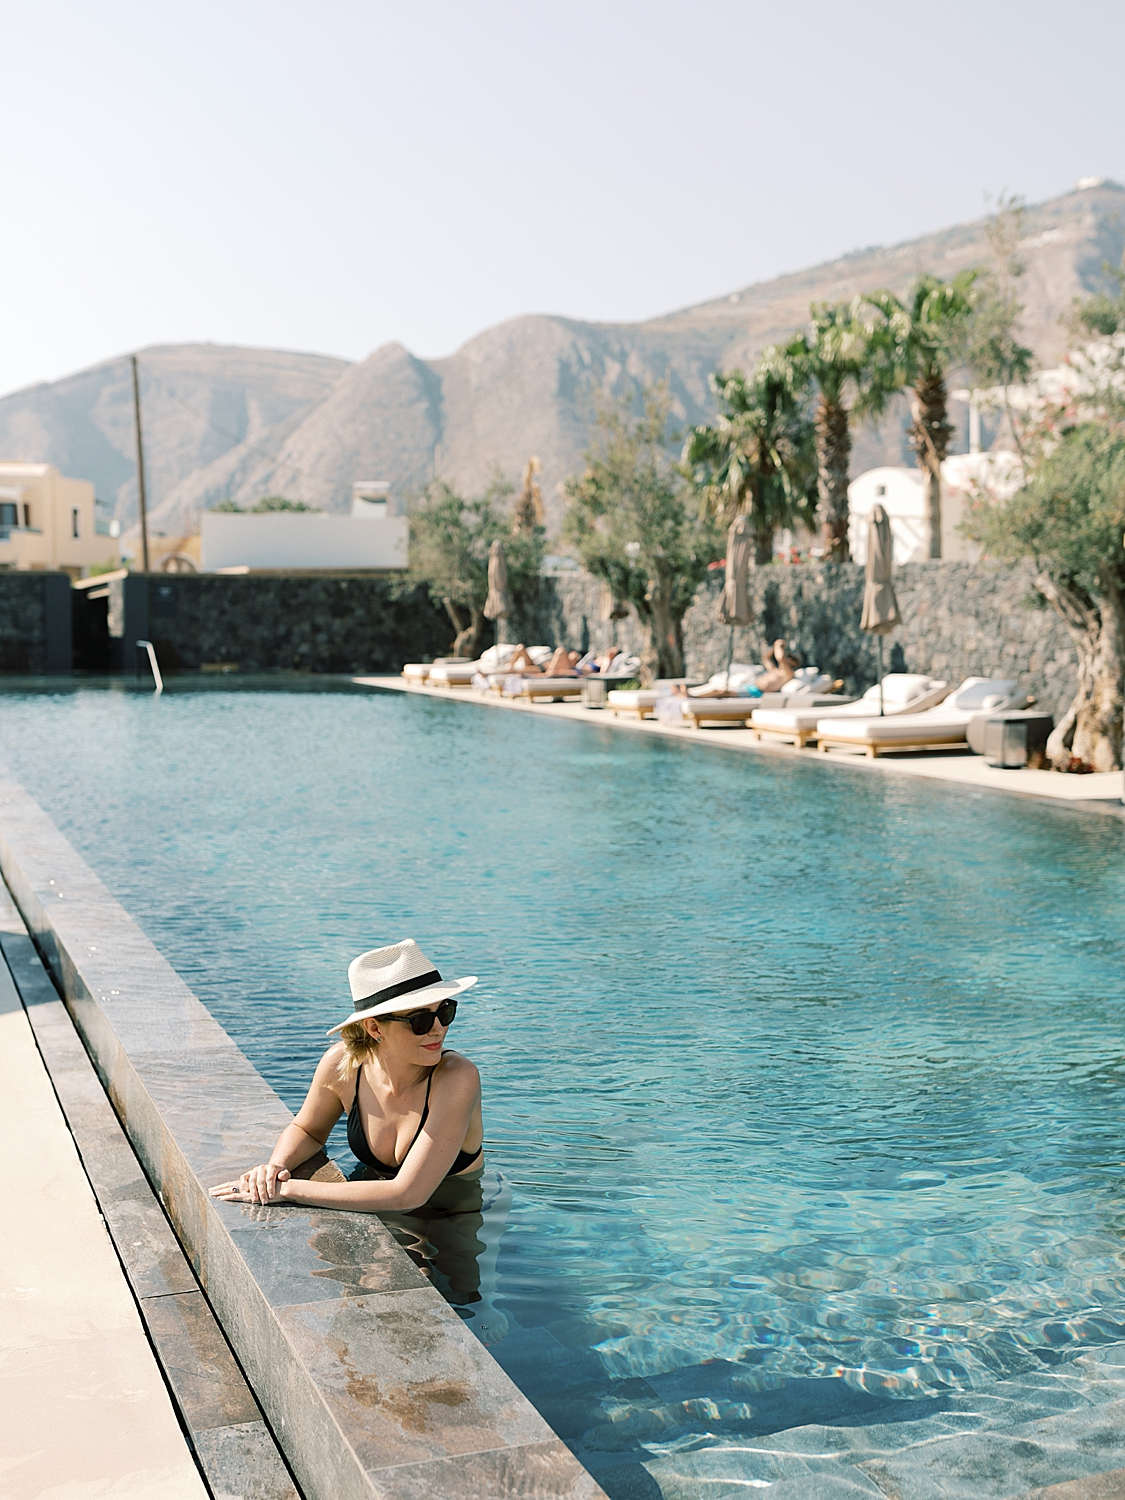 - We spent six fantastic days exploring ruins, hiking coastlines, diving into the Mediterranean Sea and swimming in infinity pools.